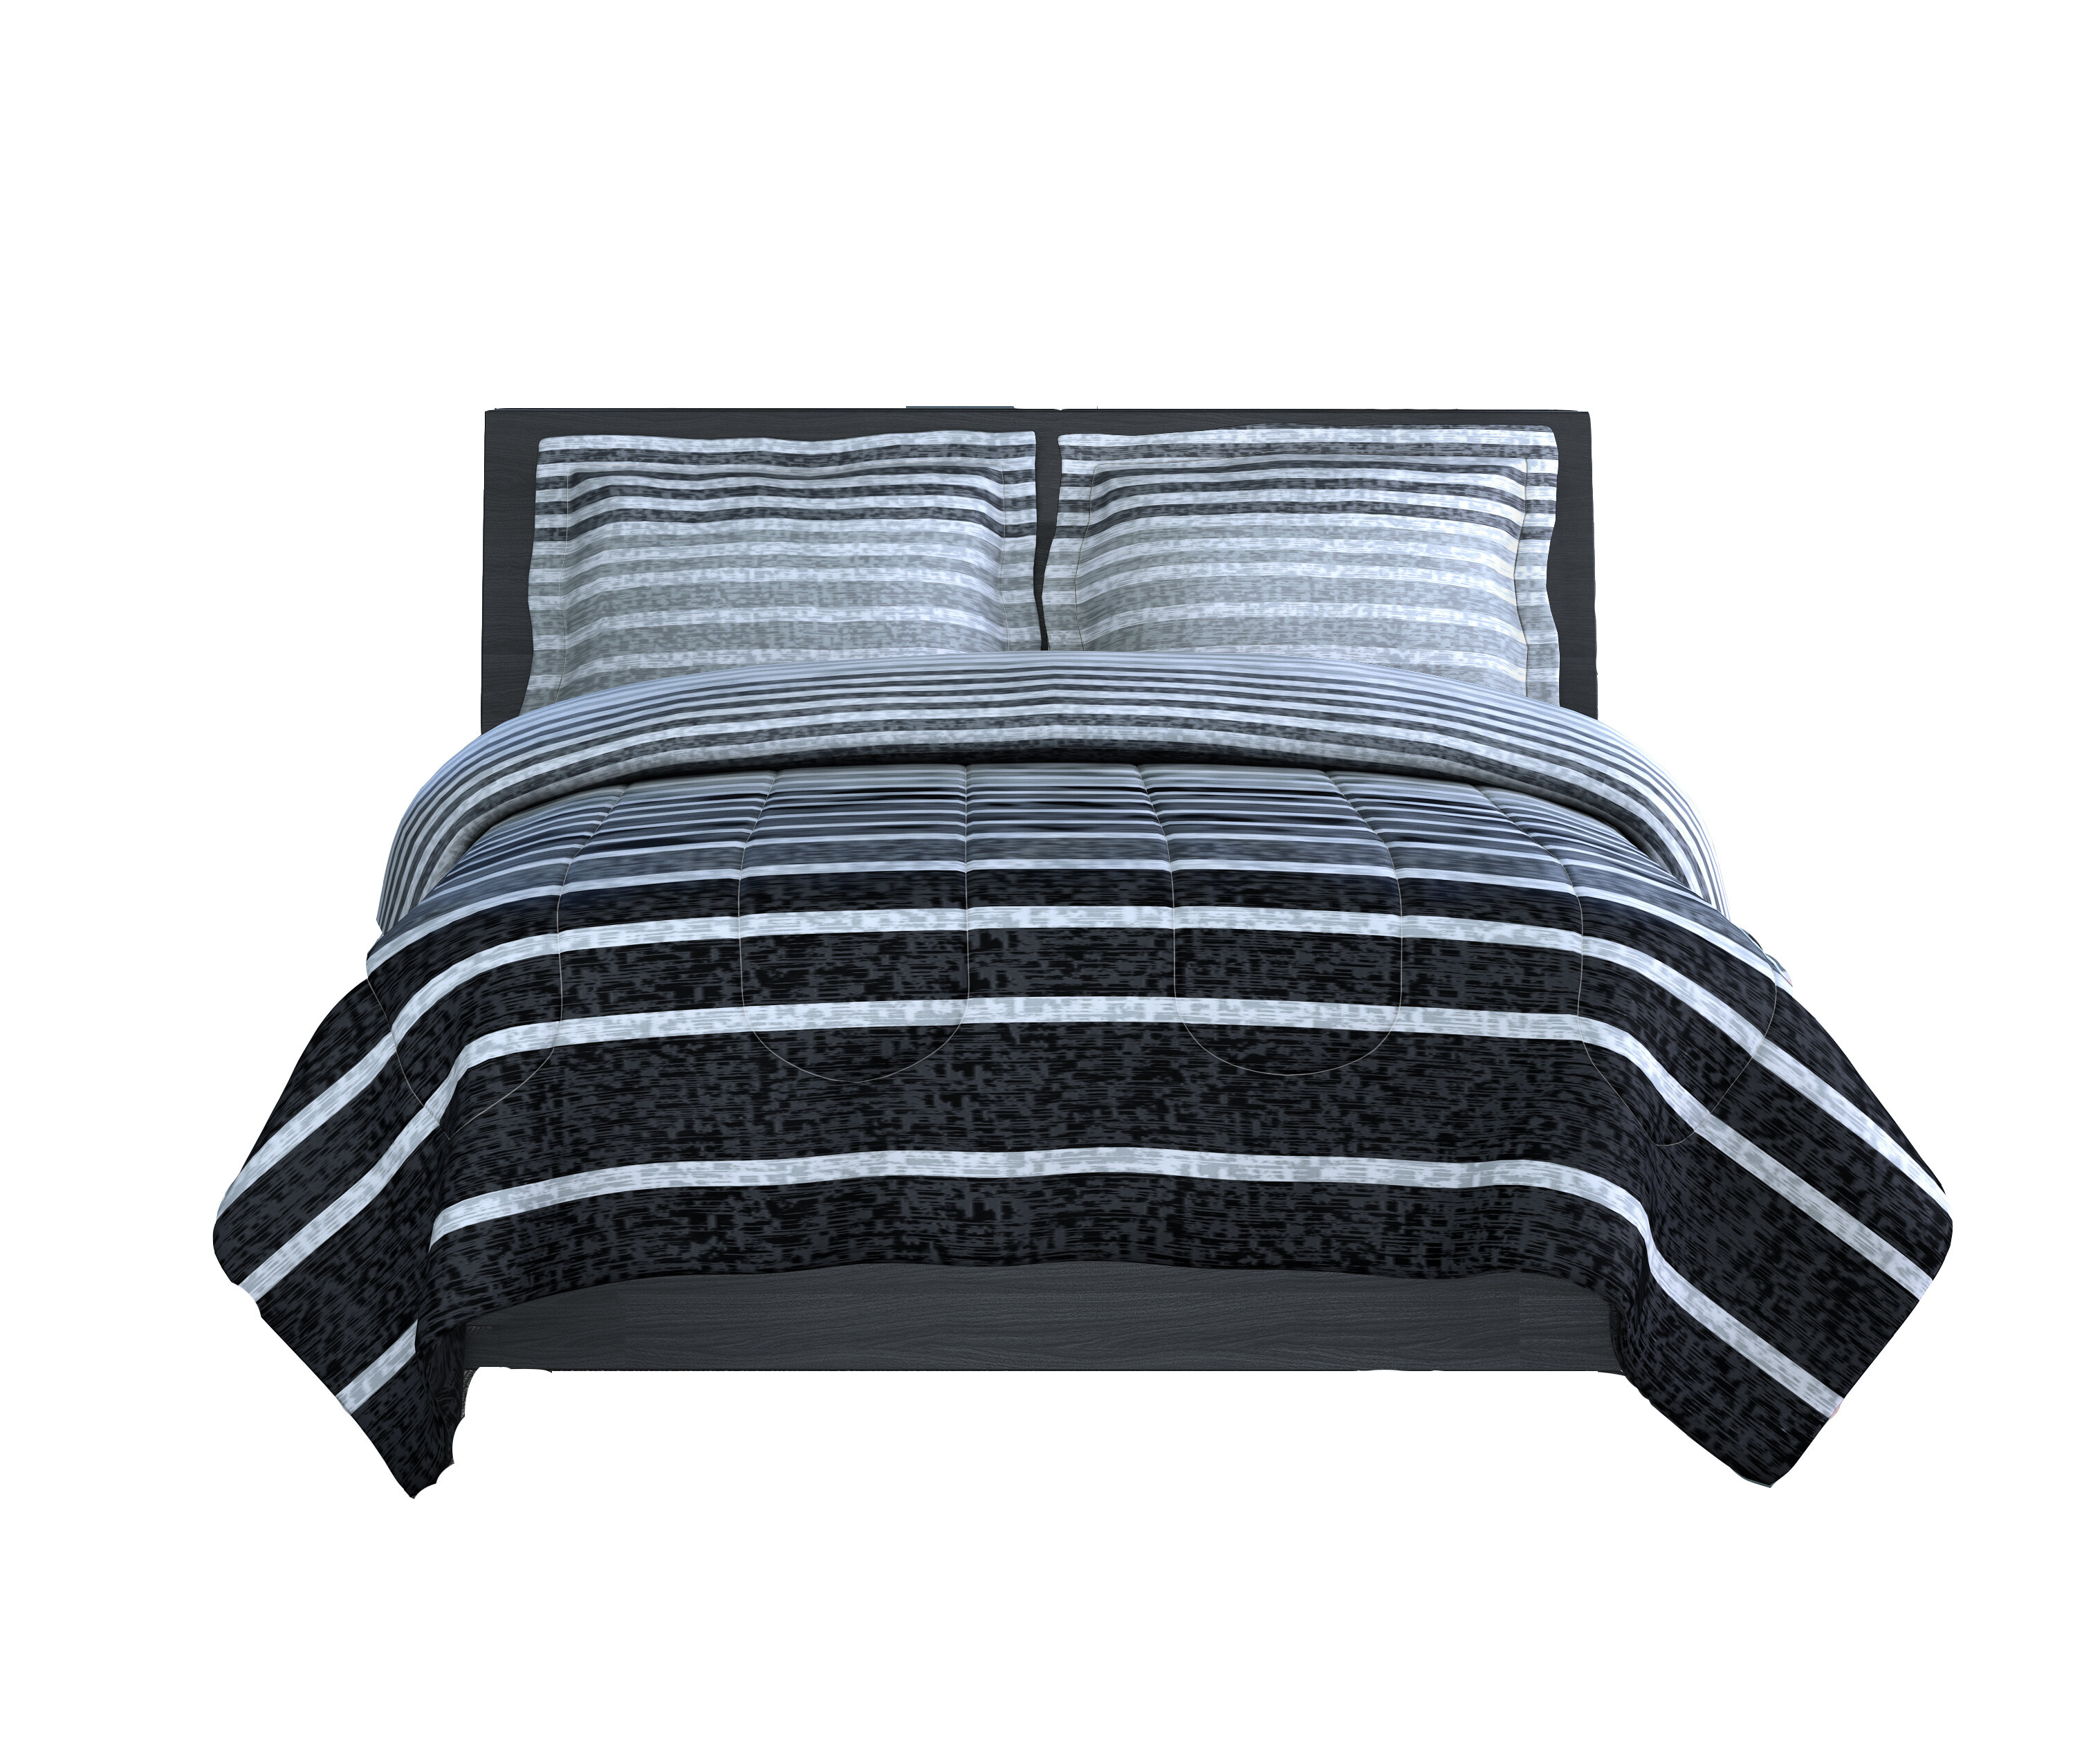 Bedding Modern Sporty Soft Light Blue Navy Grey White Stripe Comforter Set Pillows New Home Furniture Diy Mhg Co Ke